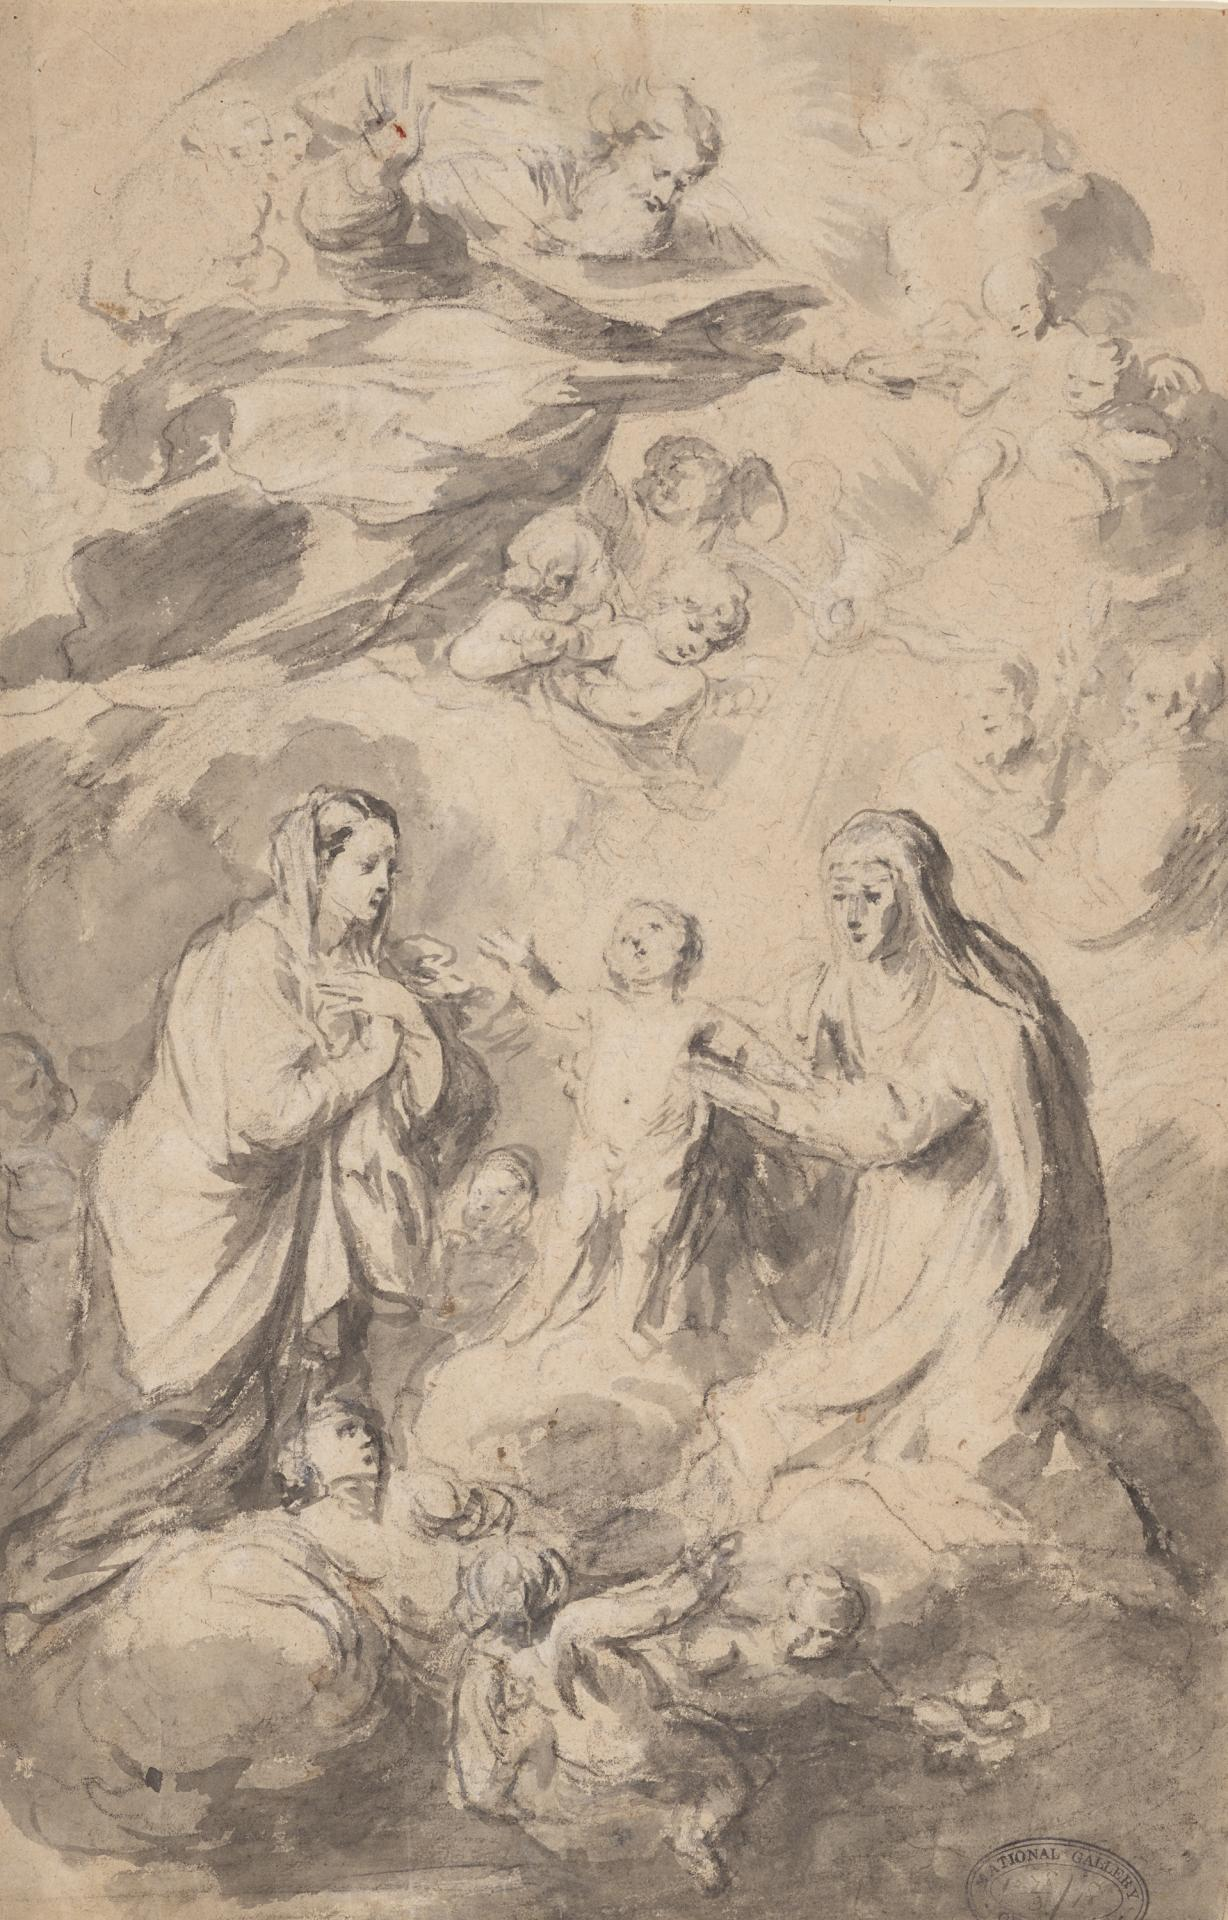 Virgin, child and a saint adoring God the father